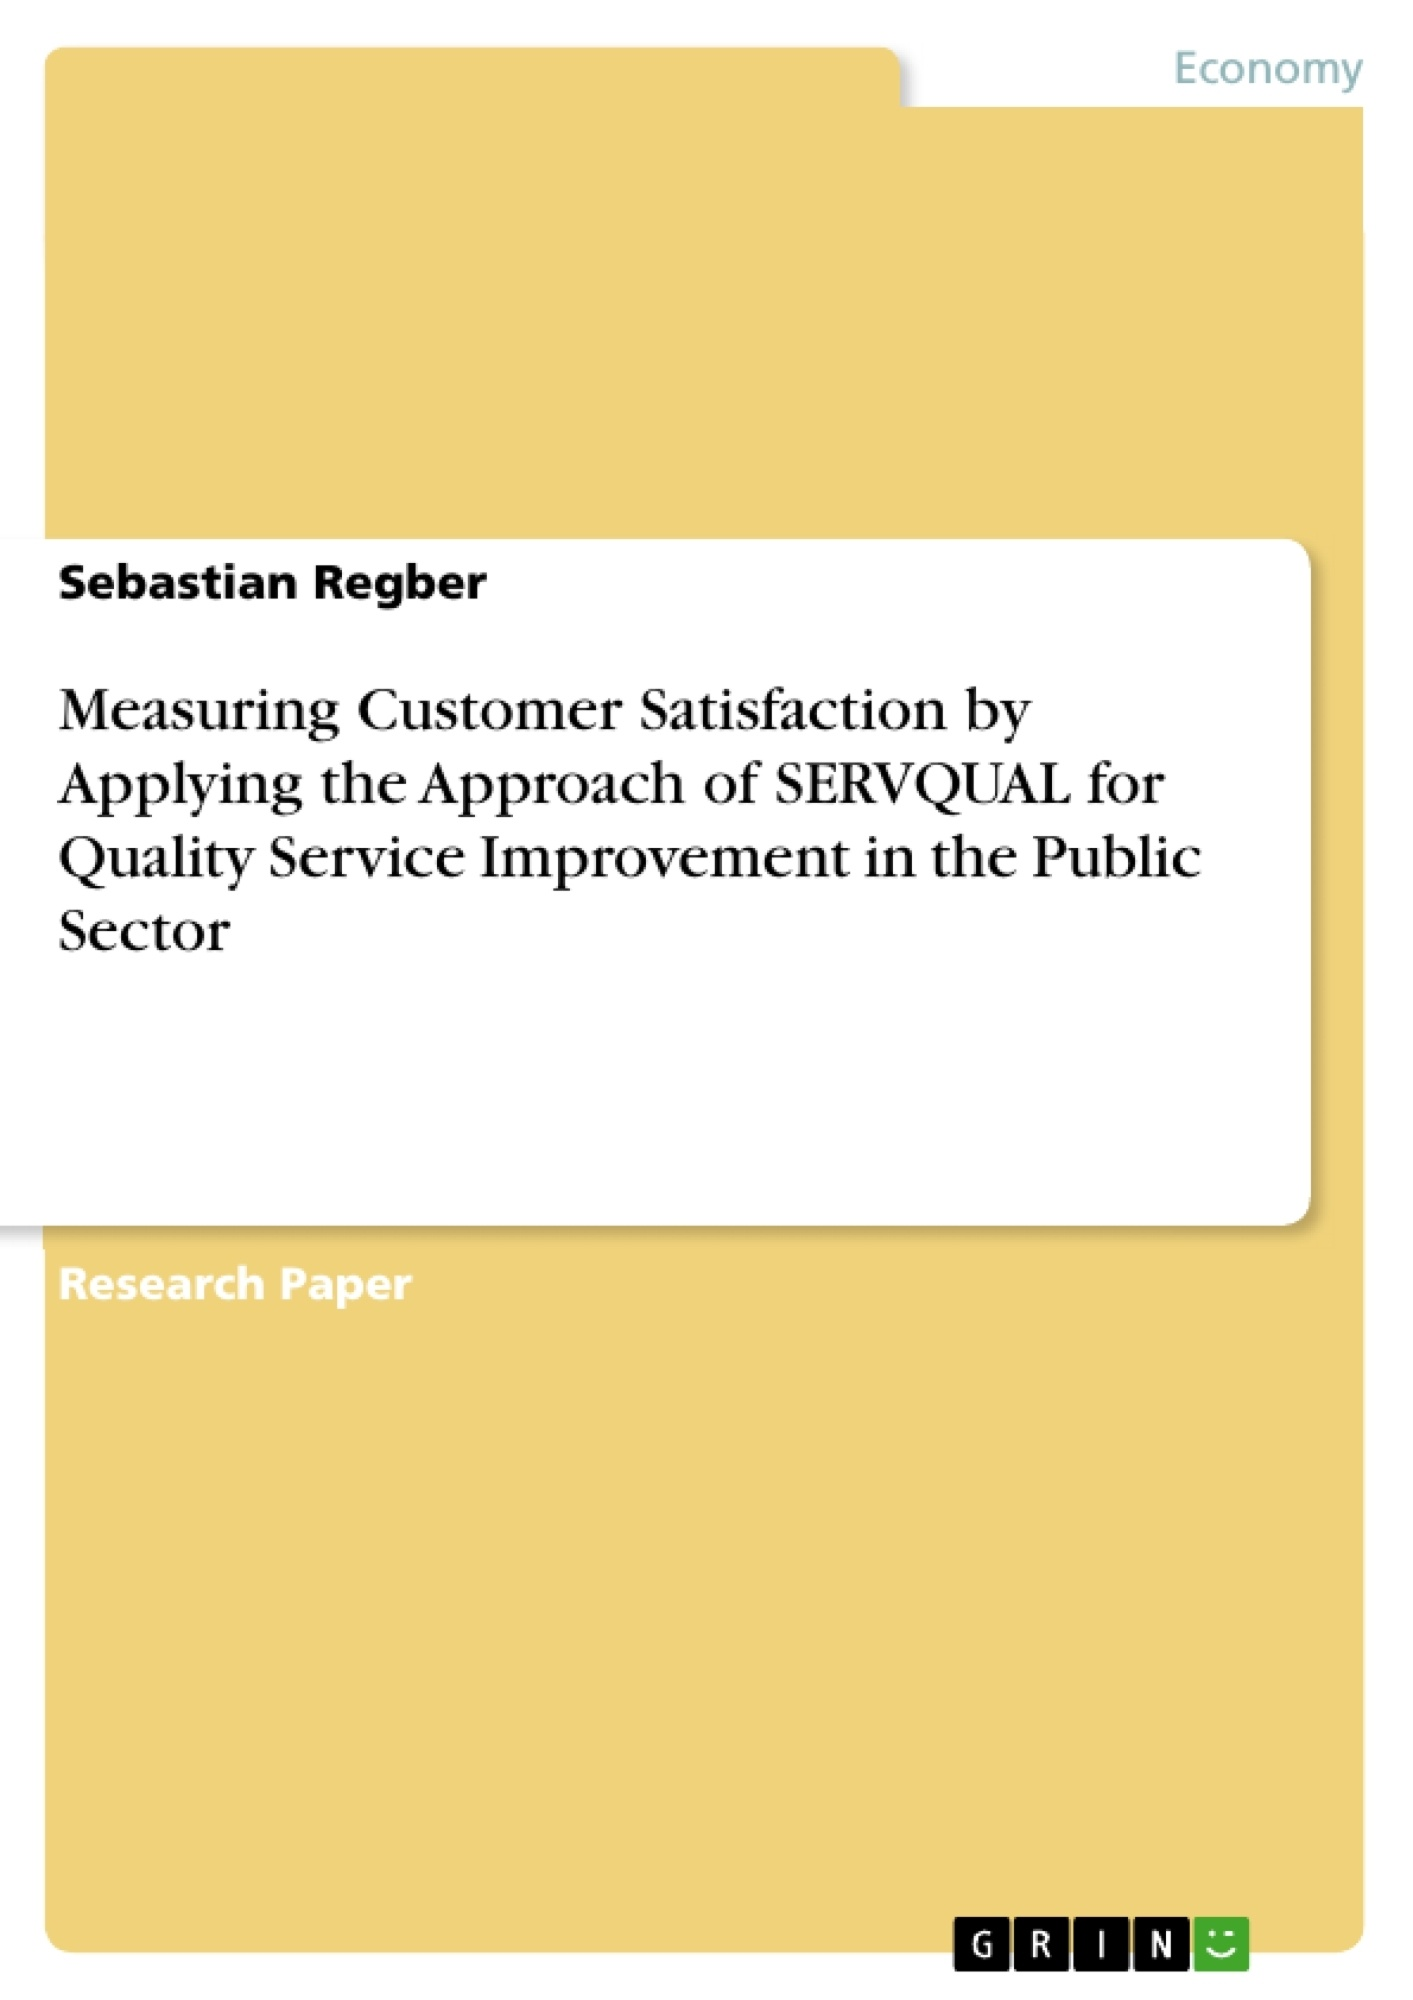 Title: Measuring Customer Satisfaction by Applying the Approach of SERVQUAL for Quality Service Improvement in the Public Sector